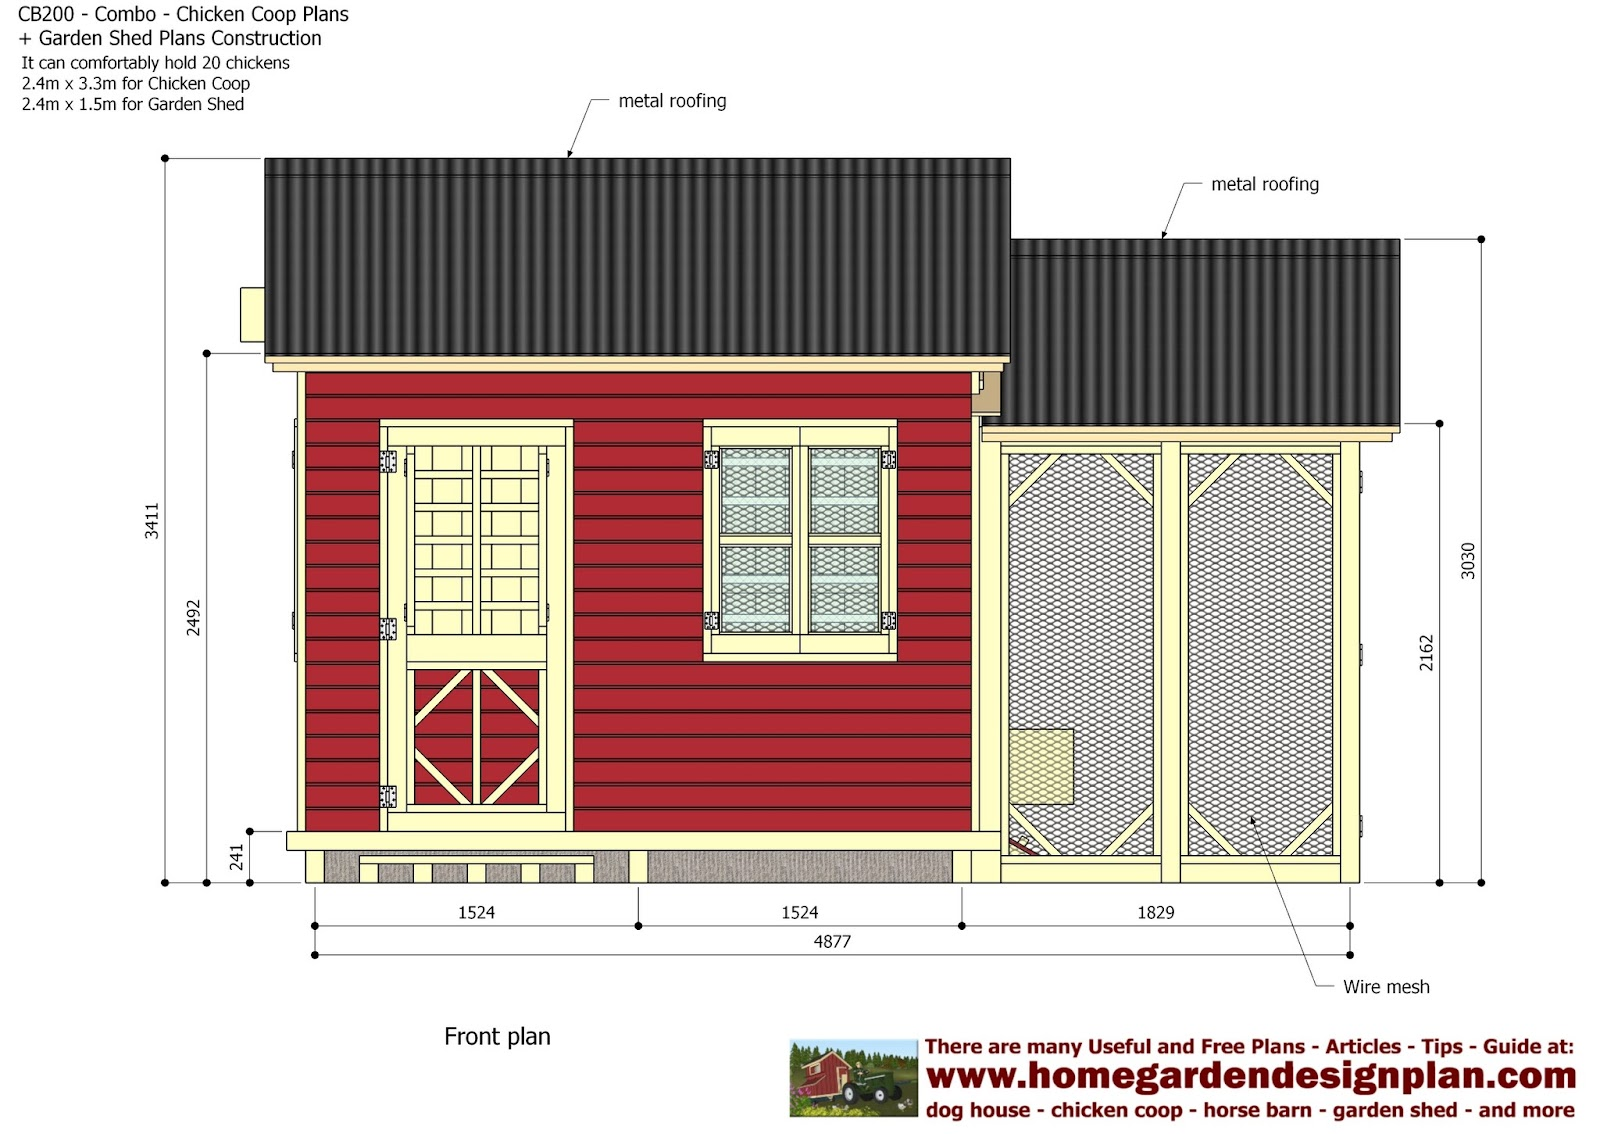 greenhouse shed combo plans - Chicken Co Op Plans And Greenhouse